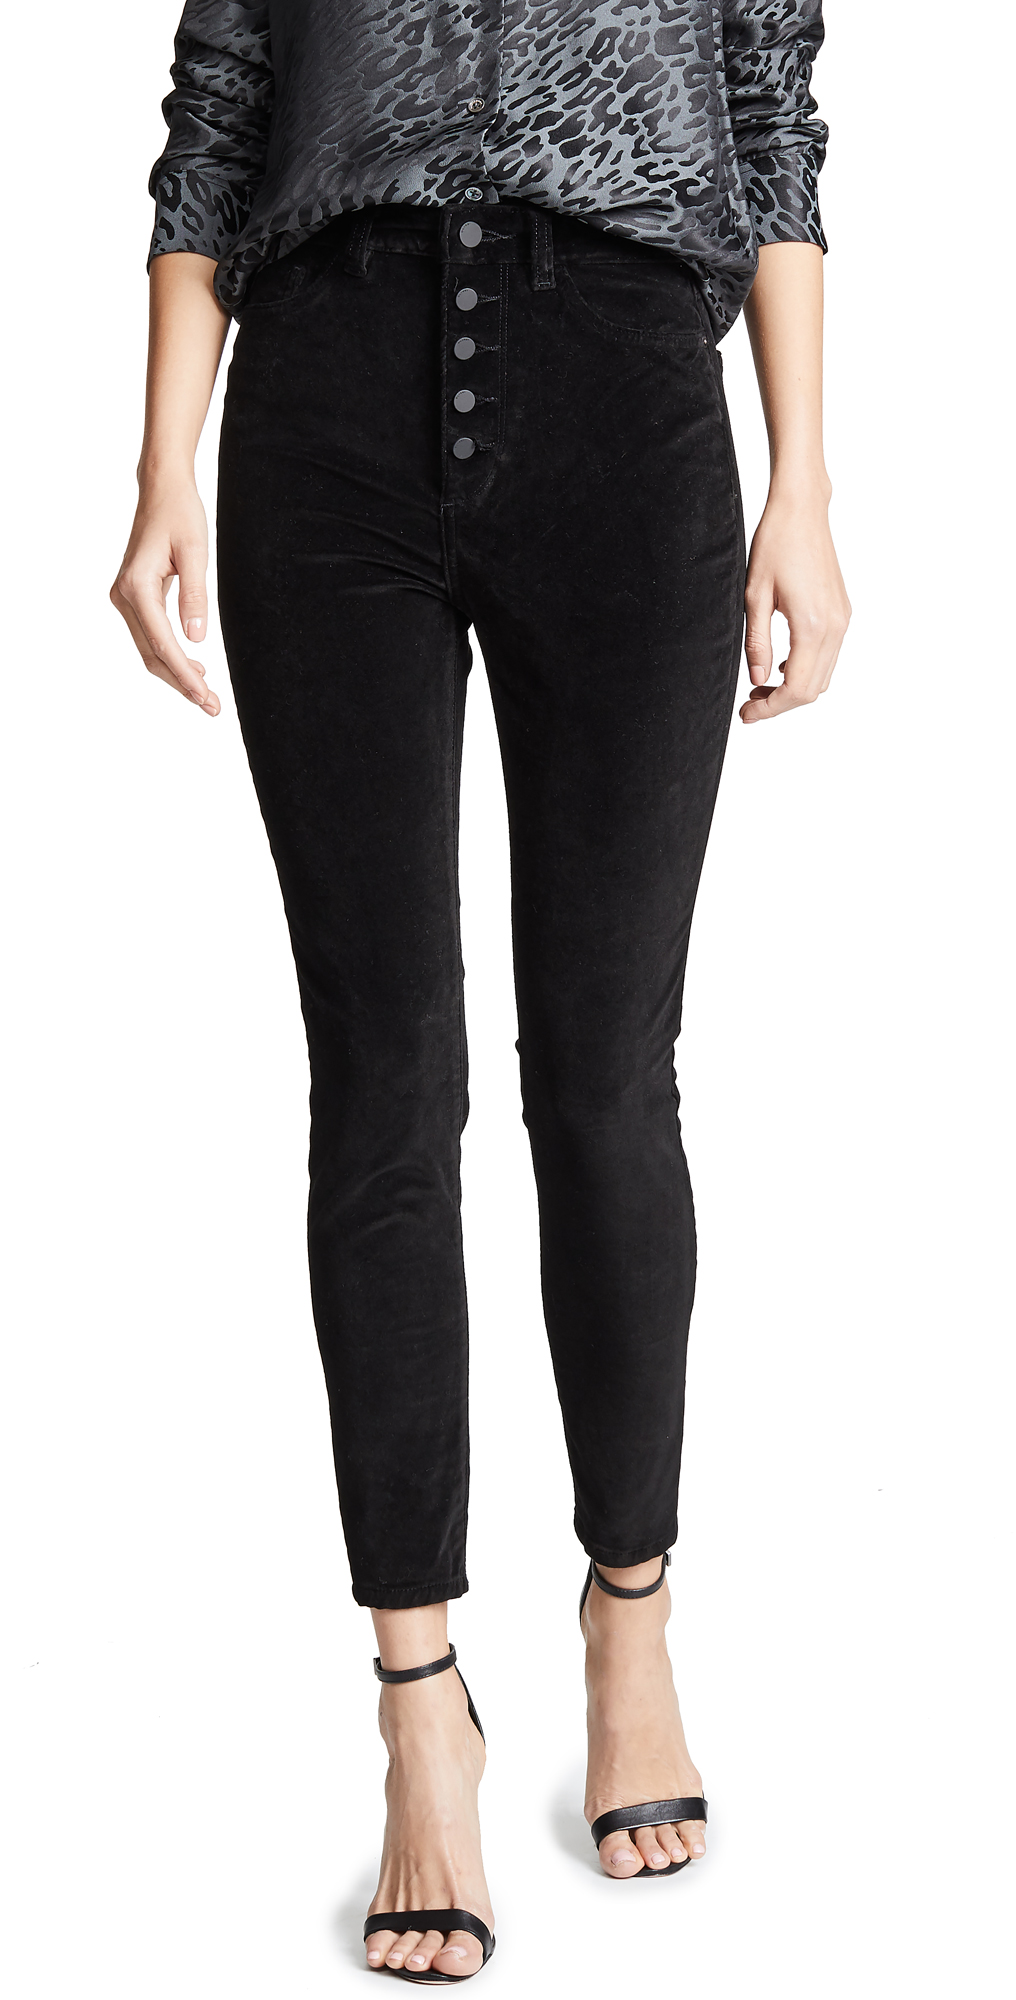 DL1961 Chrissy Velvet Ultra High Rise Jeans